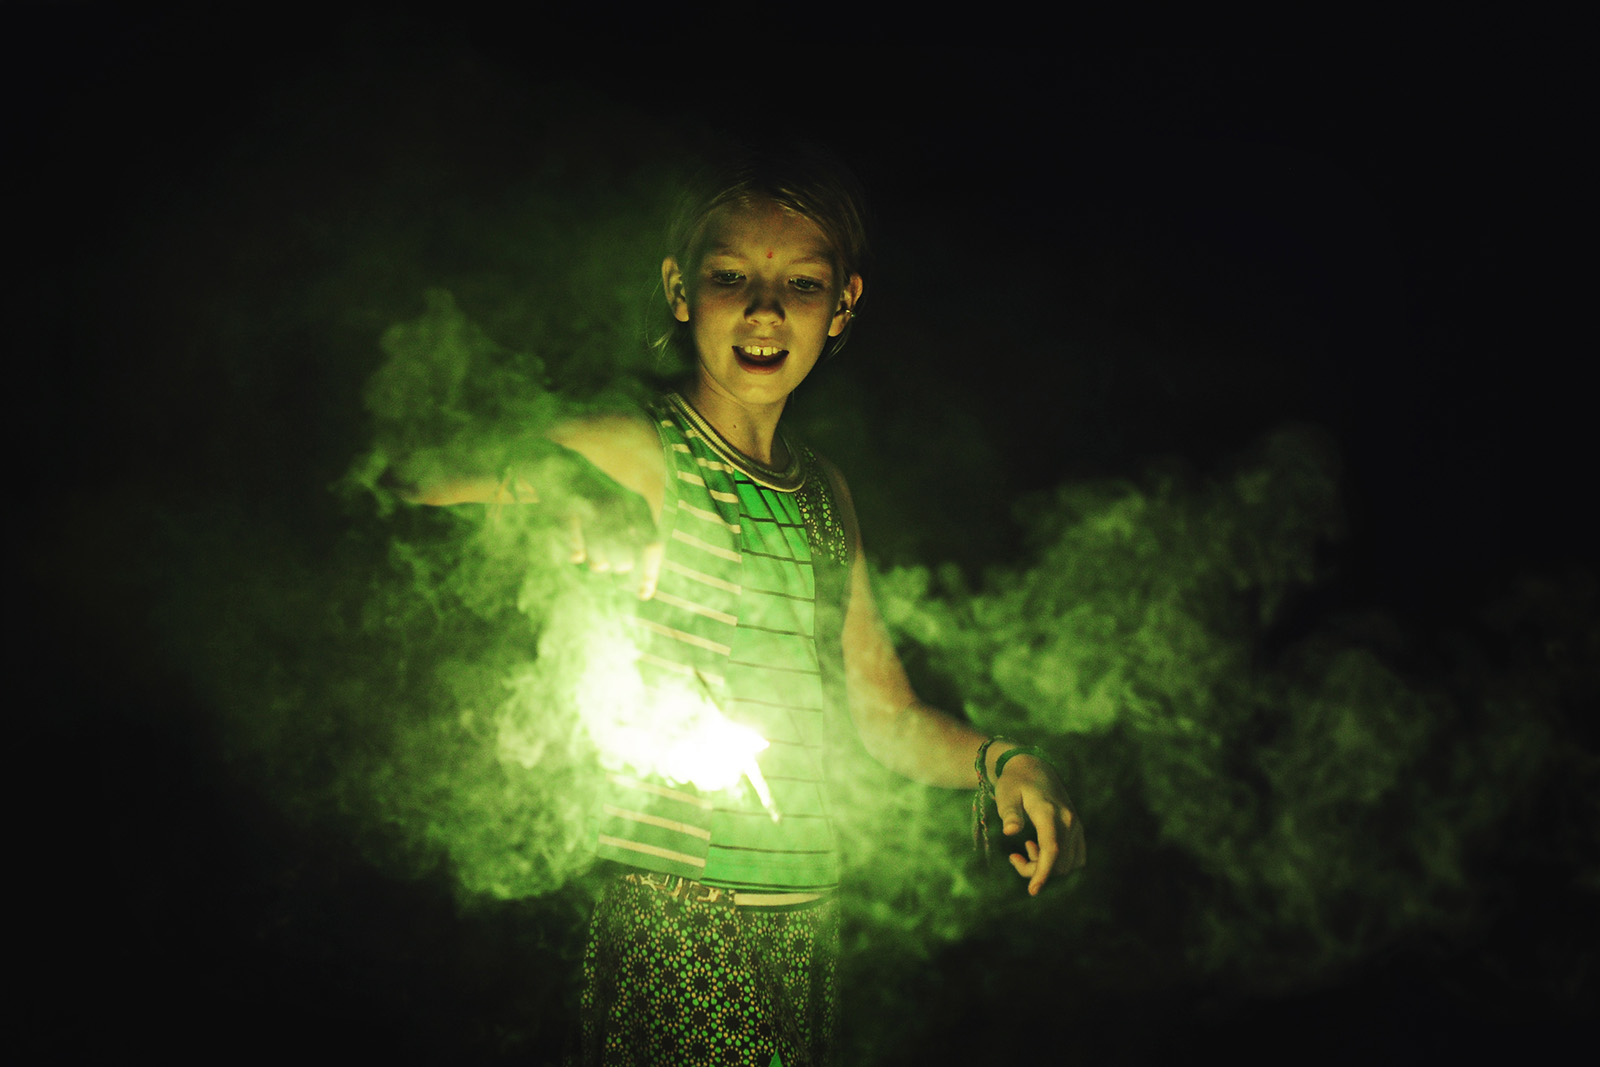 Using sparklers for photography